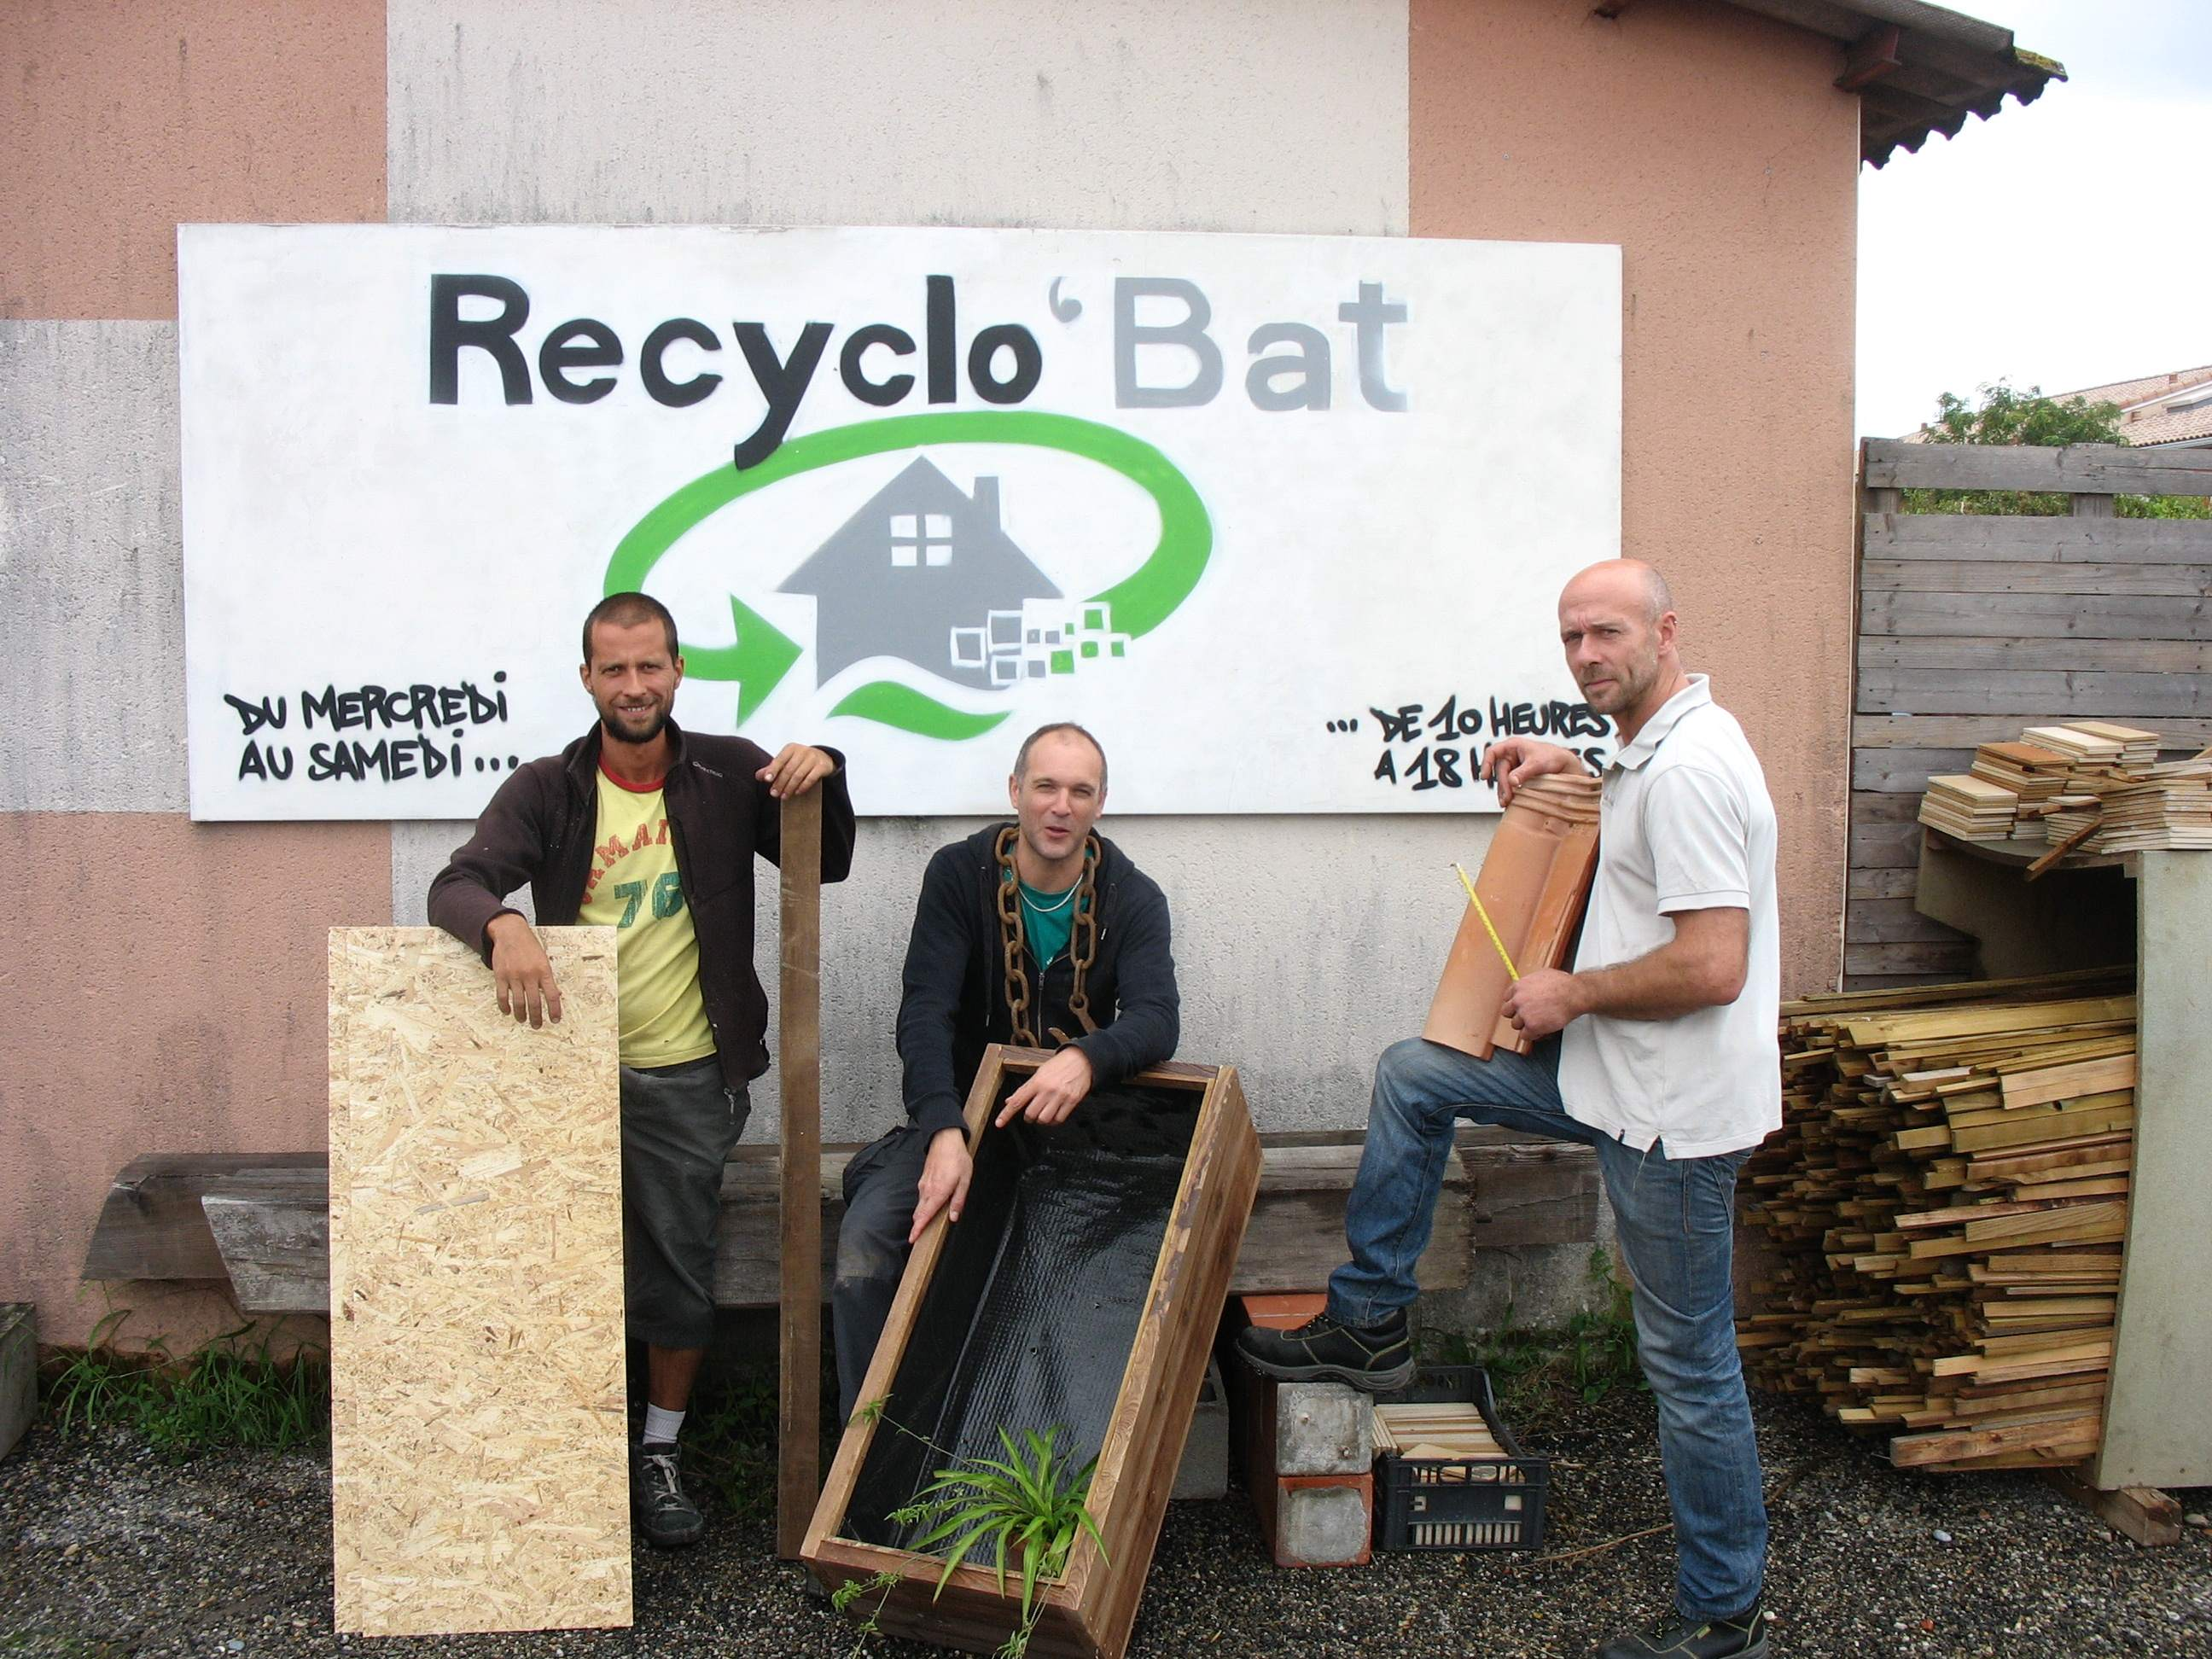 recyclo'bat